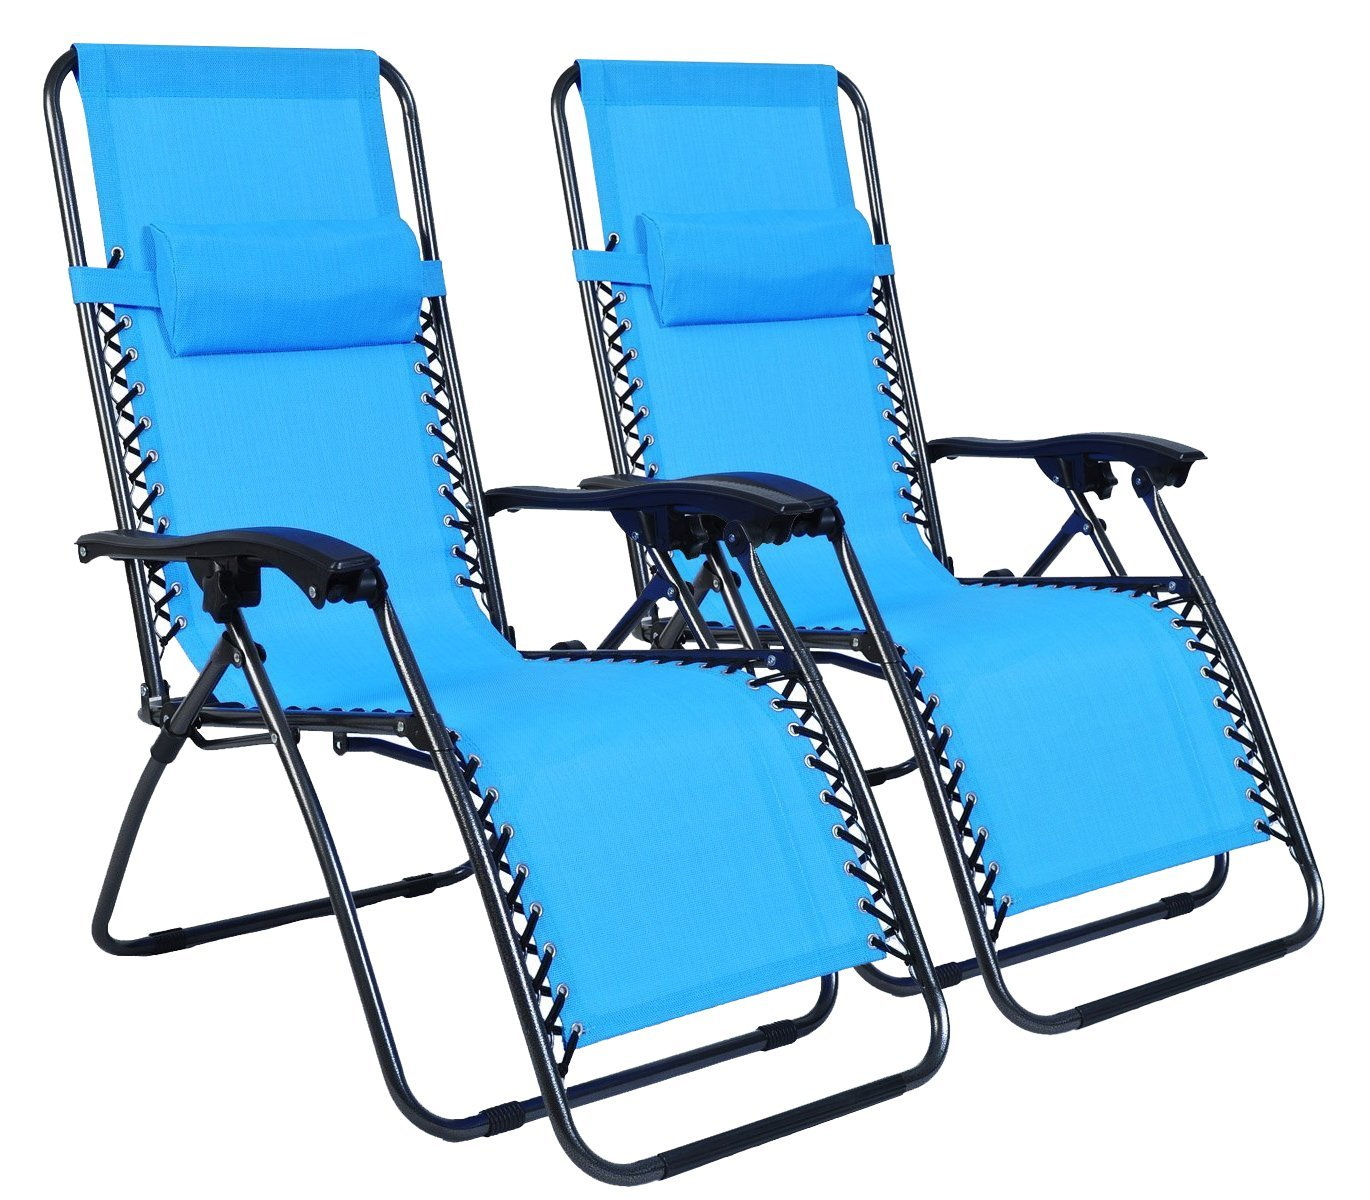 Odaof Zero Gravity Recliner Lounge Patio Pool Chair - 2 PACK (Light Blue)